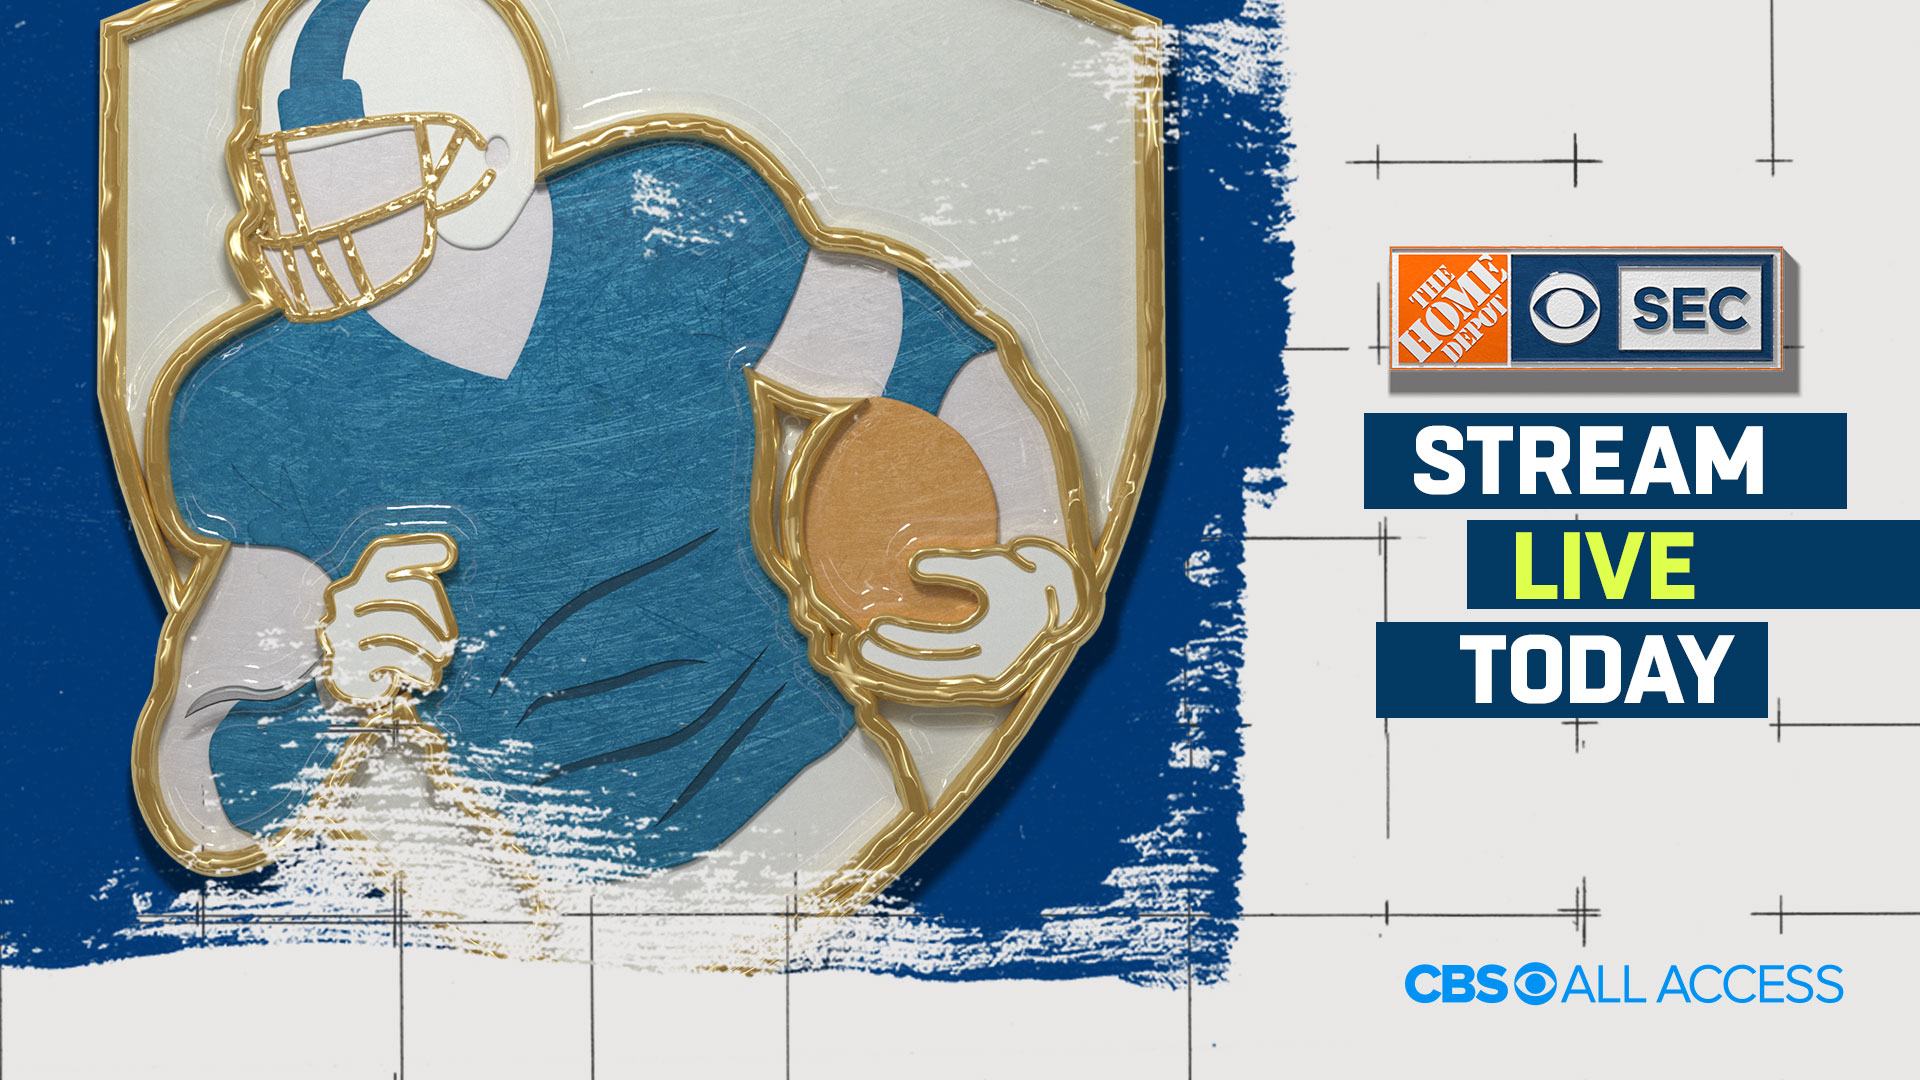 2020 SEC On CBS Schedule: How To Watch Live NCAA Football Games With CBS All Access